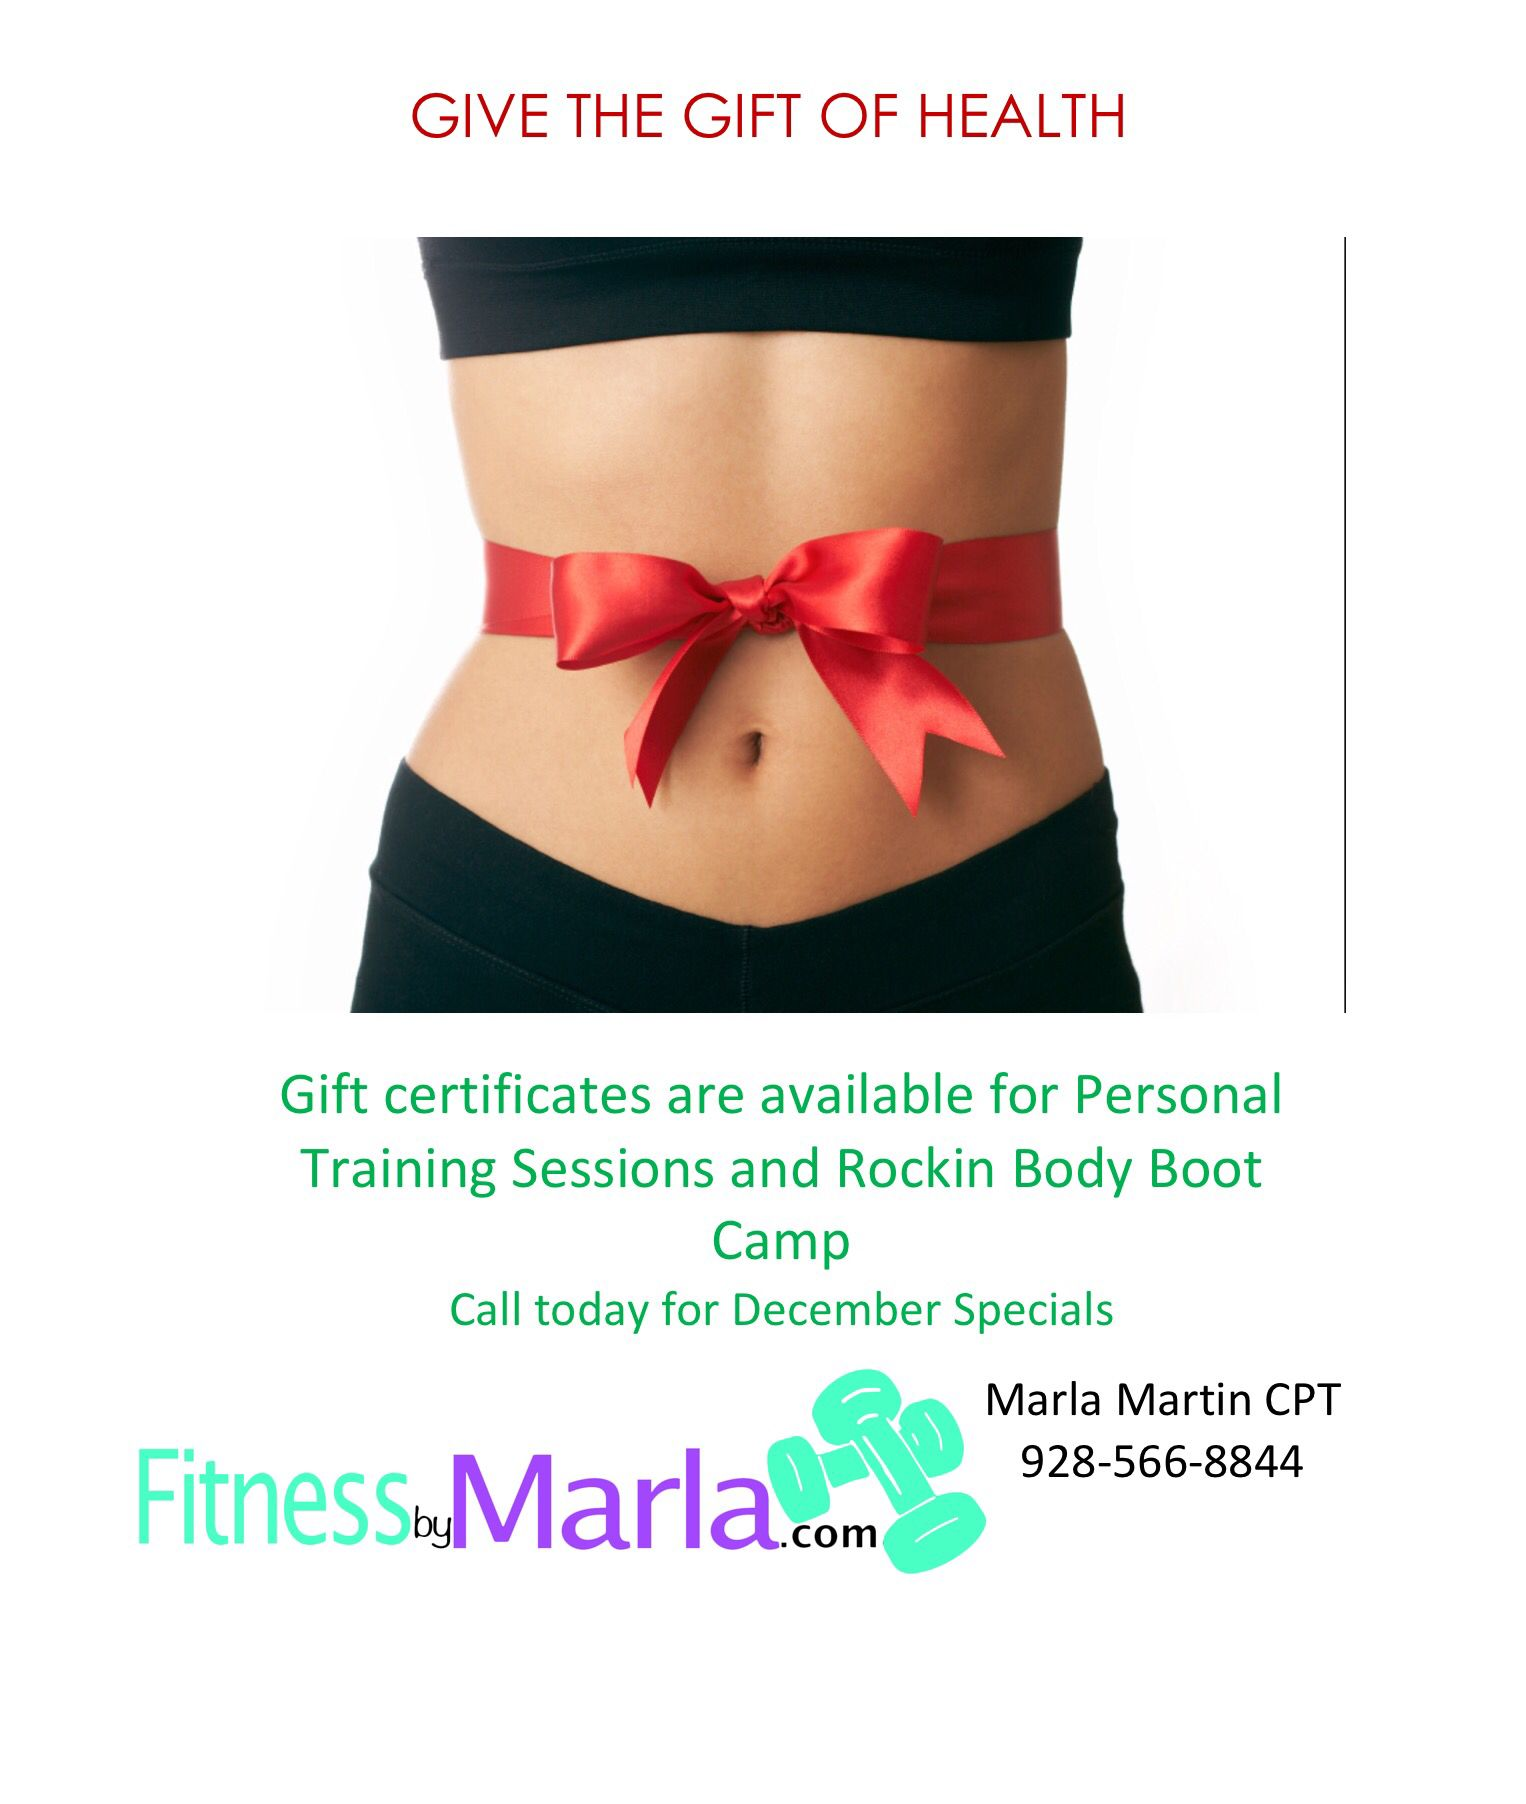 Gift certificates available for boot camp and personal training gift certificates available for boot camp and personal training xflitez Gallery